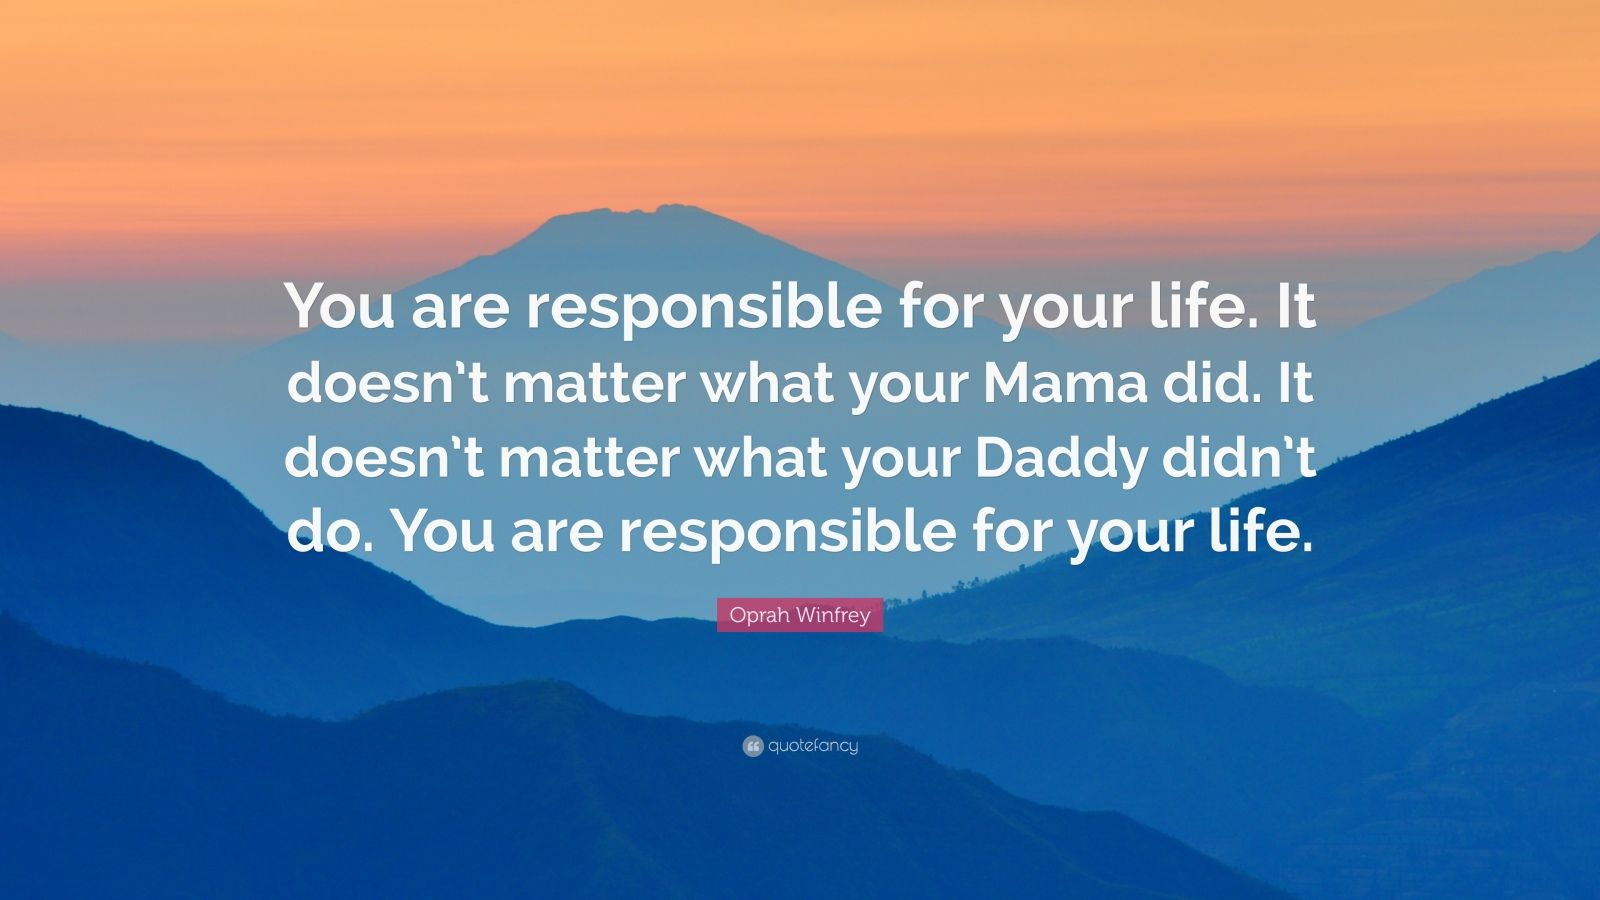 "Oprah Winfrey Quote: ""You are responsible for your life. It doesn't matter what your Mama did. It doesn't matter what your Daddy didn't do. You are responsible for your life."""